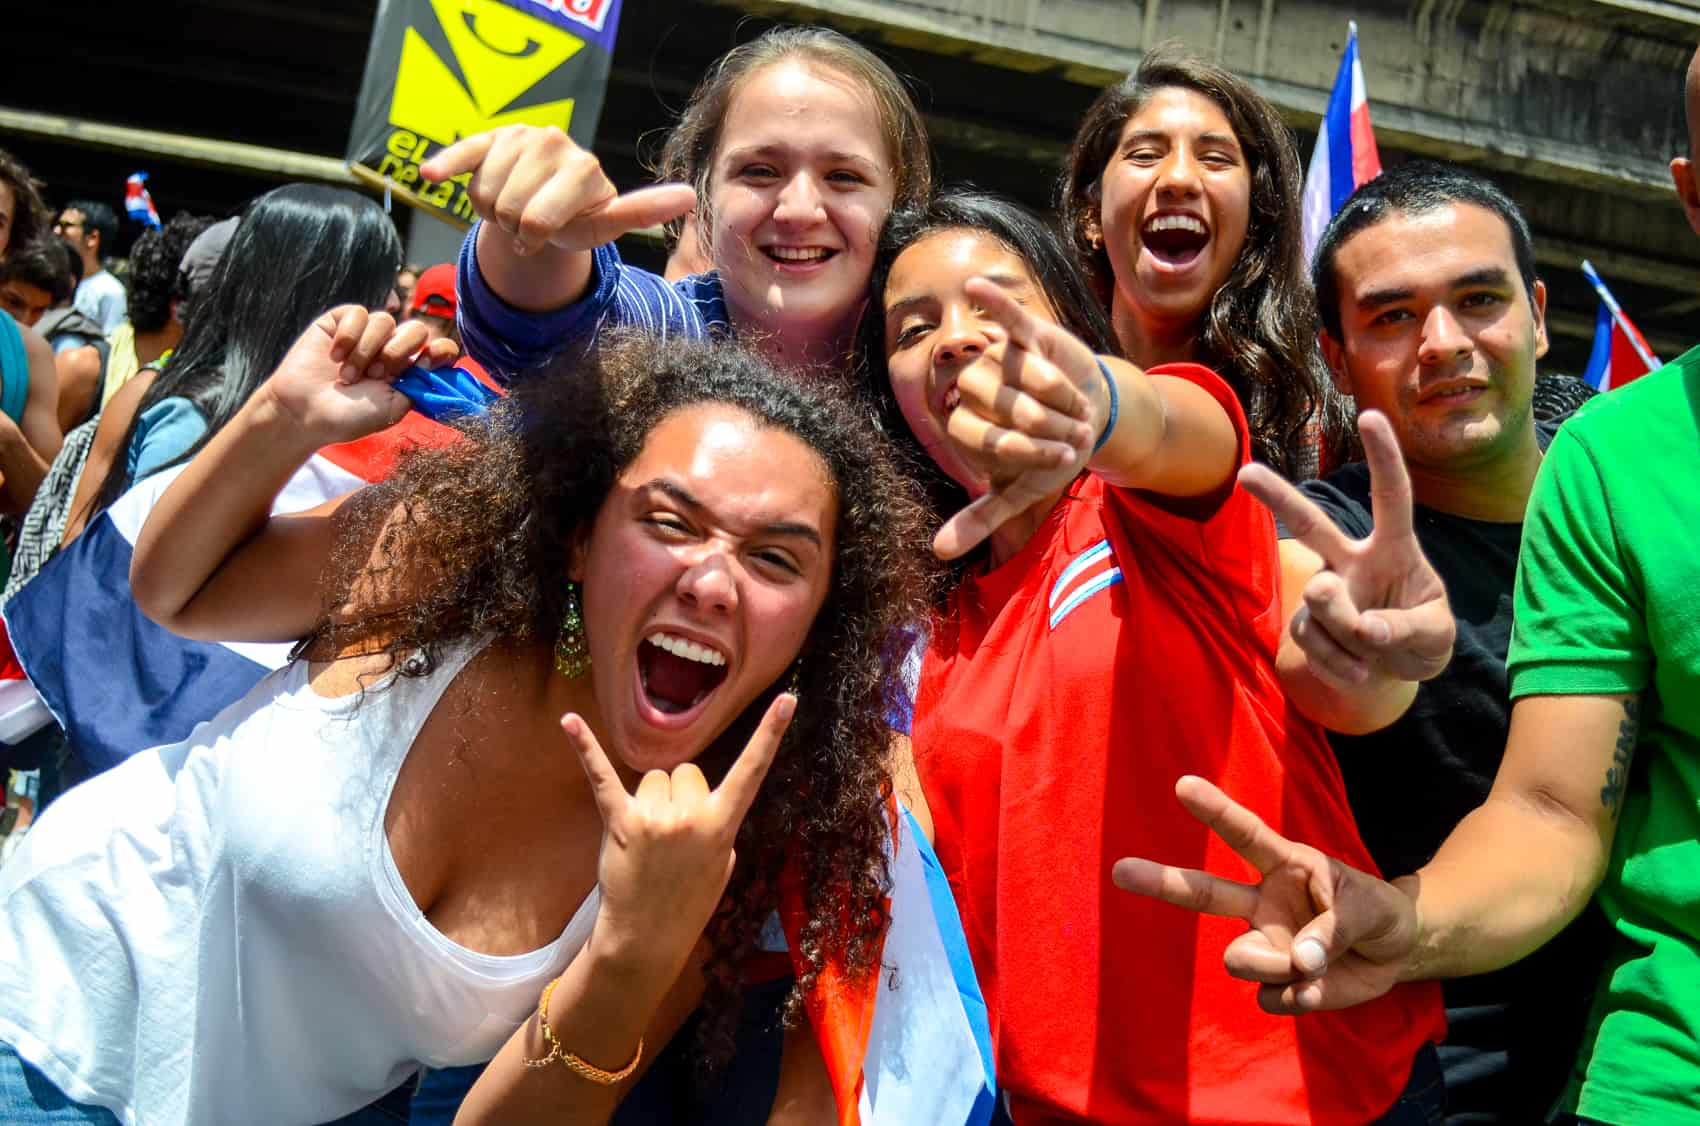 A group of smiling, young Costa Ricans